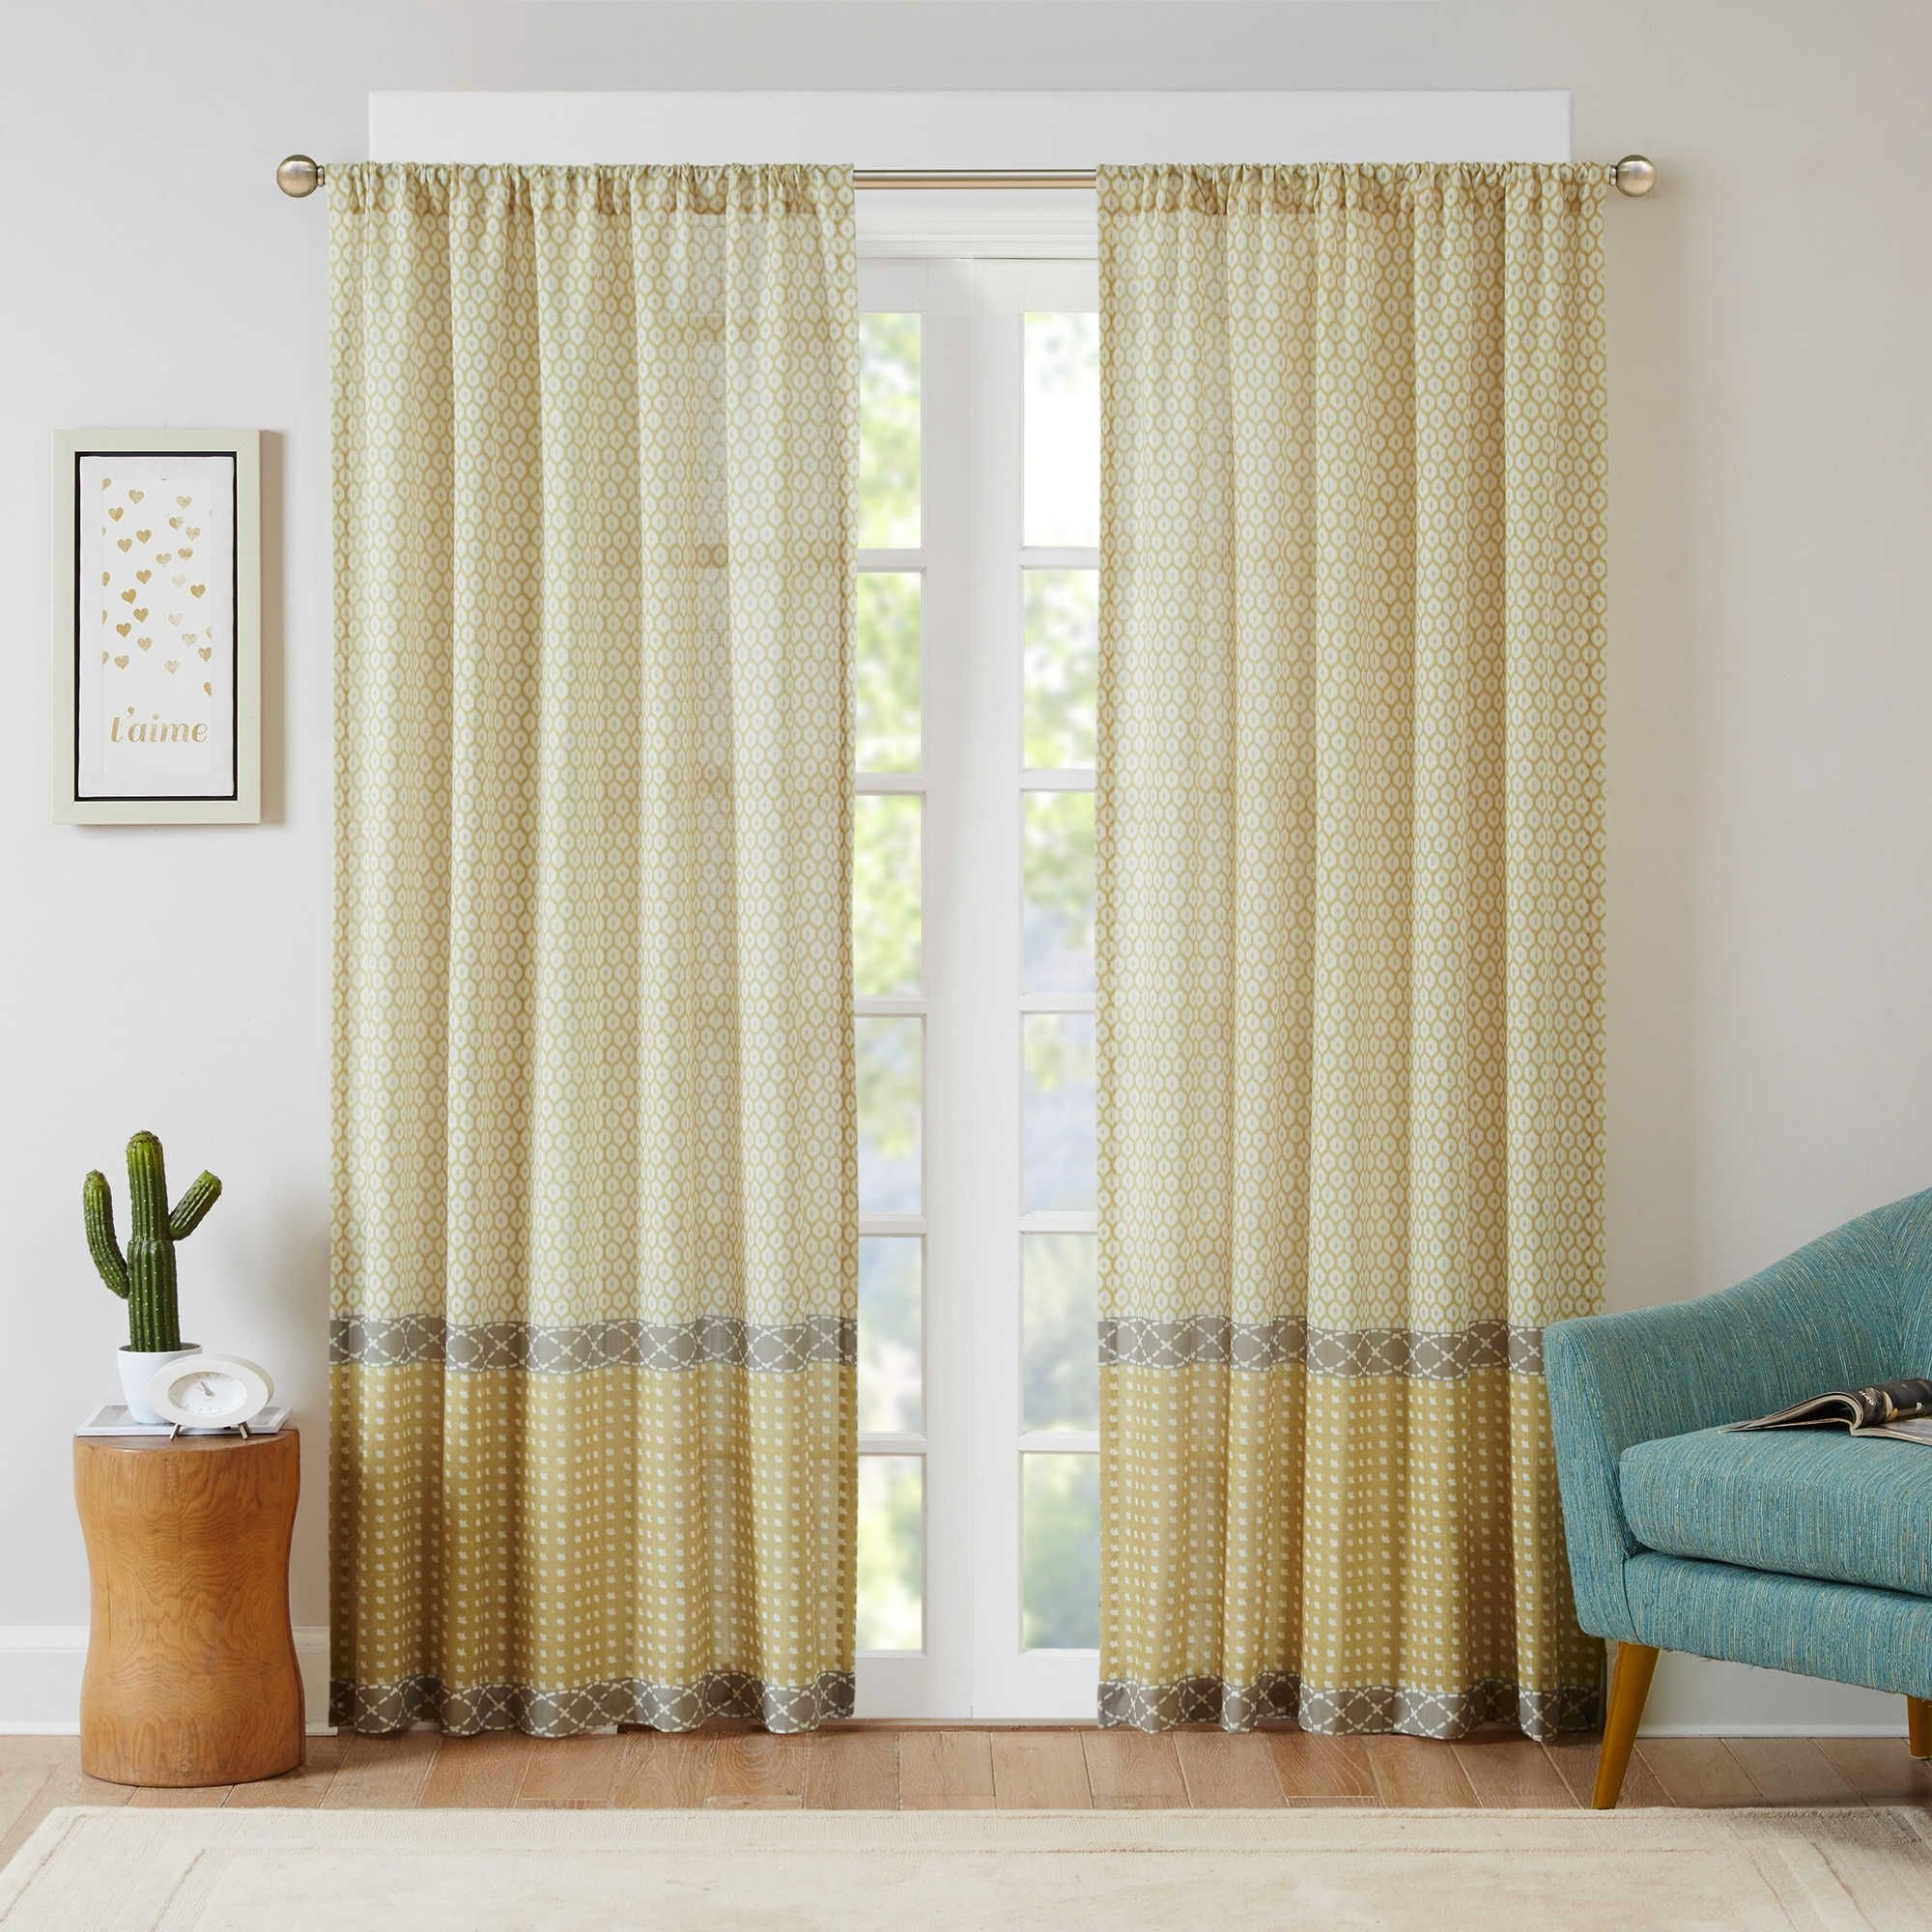 Curtains for Bedroom Windows with Designs New Intelligent Design Charlie 63 Inch Rod Pocket Window Curtain